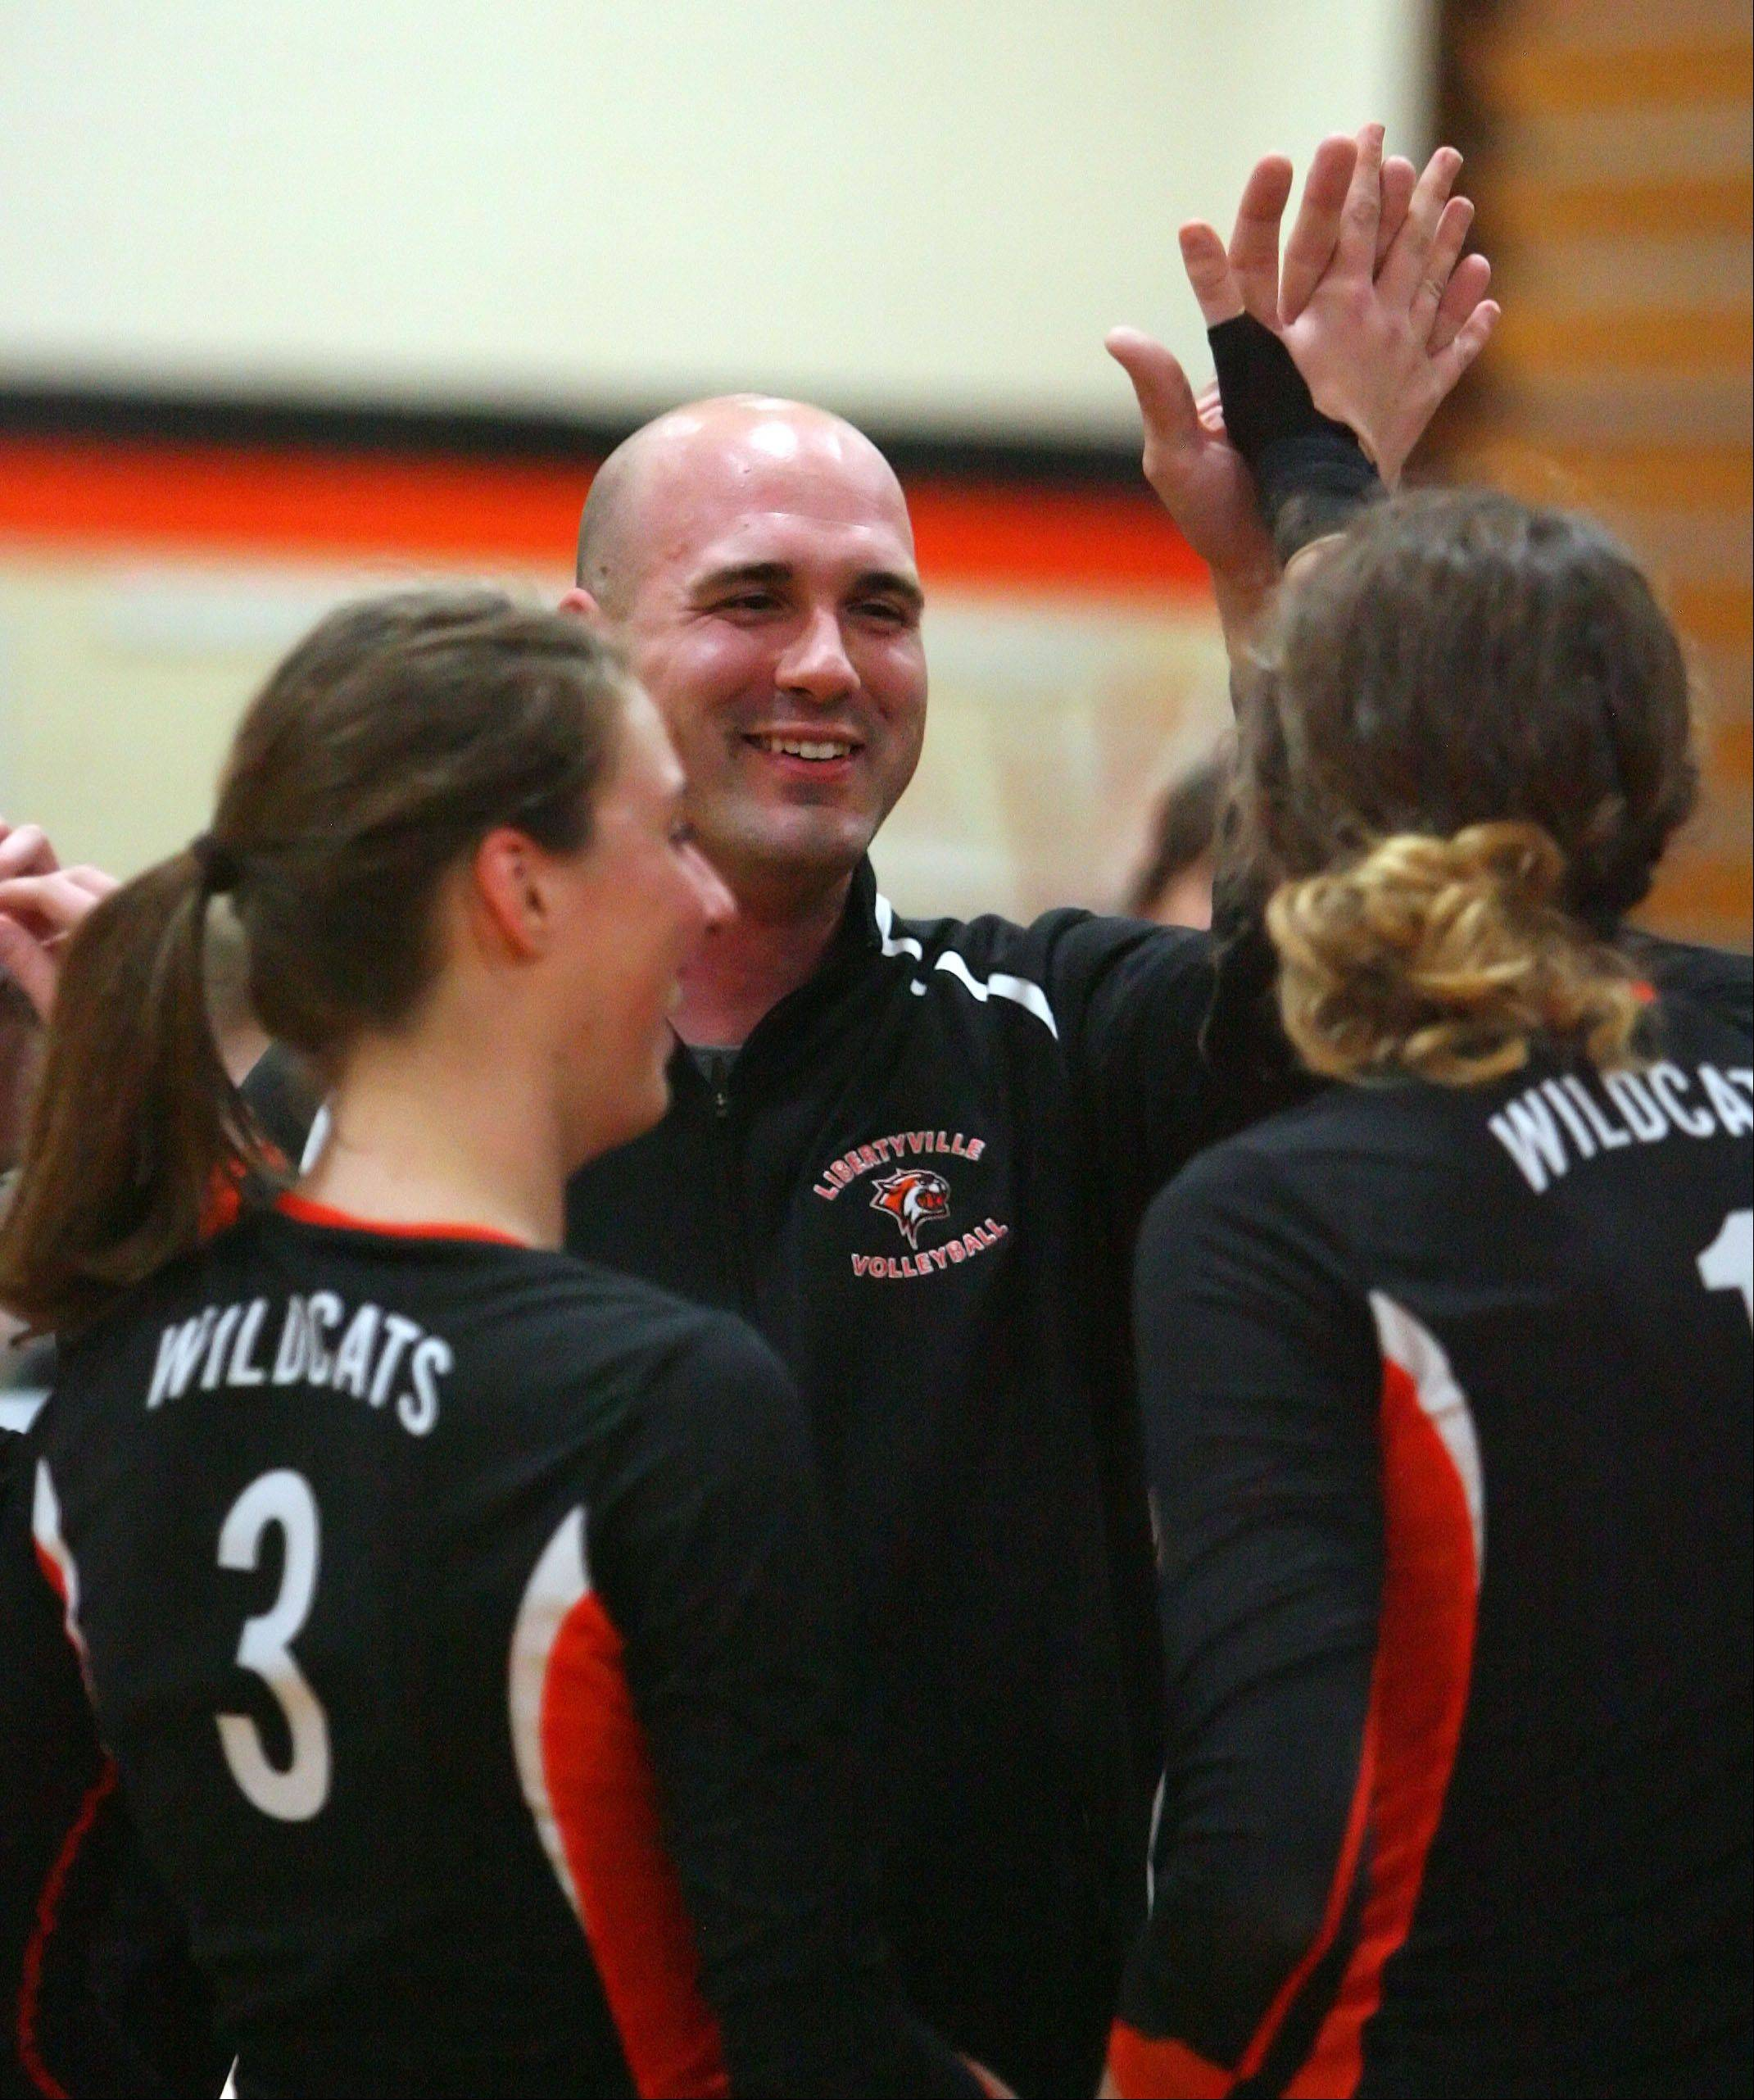 Libertyville coach Greg Loika celebrates his 100th win with his players after the Wildcats defeated Stevenson Wednesday night at Libertyville.